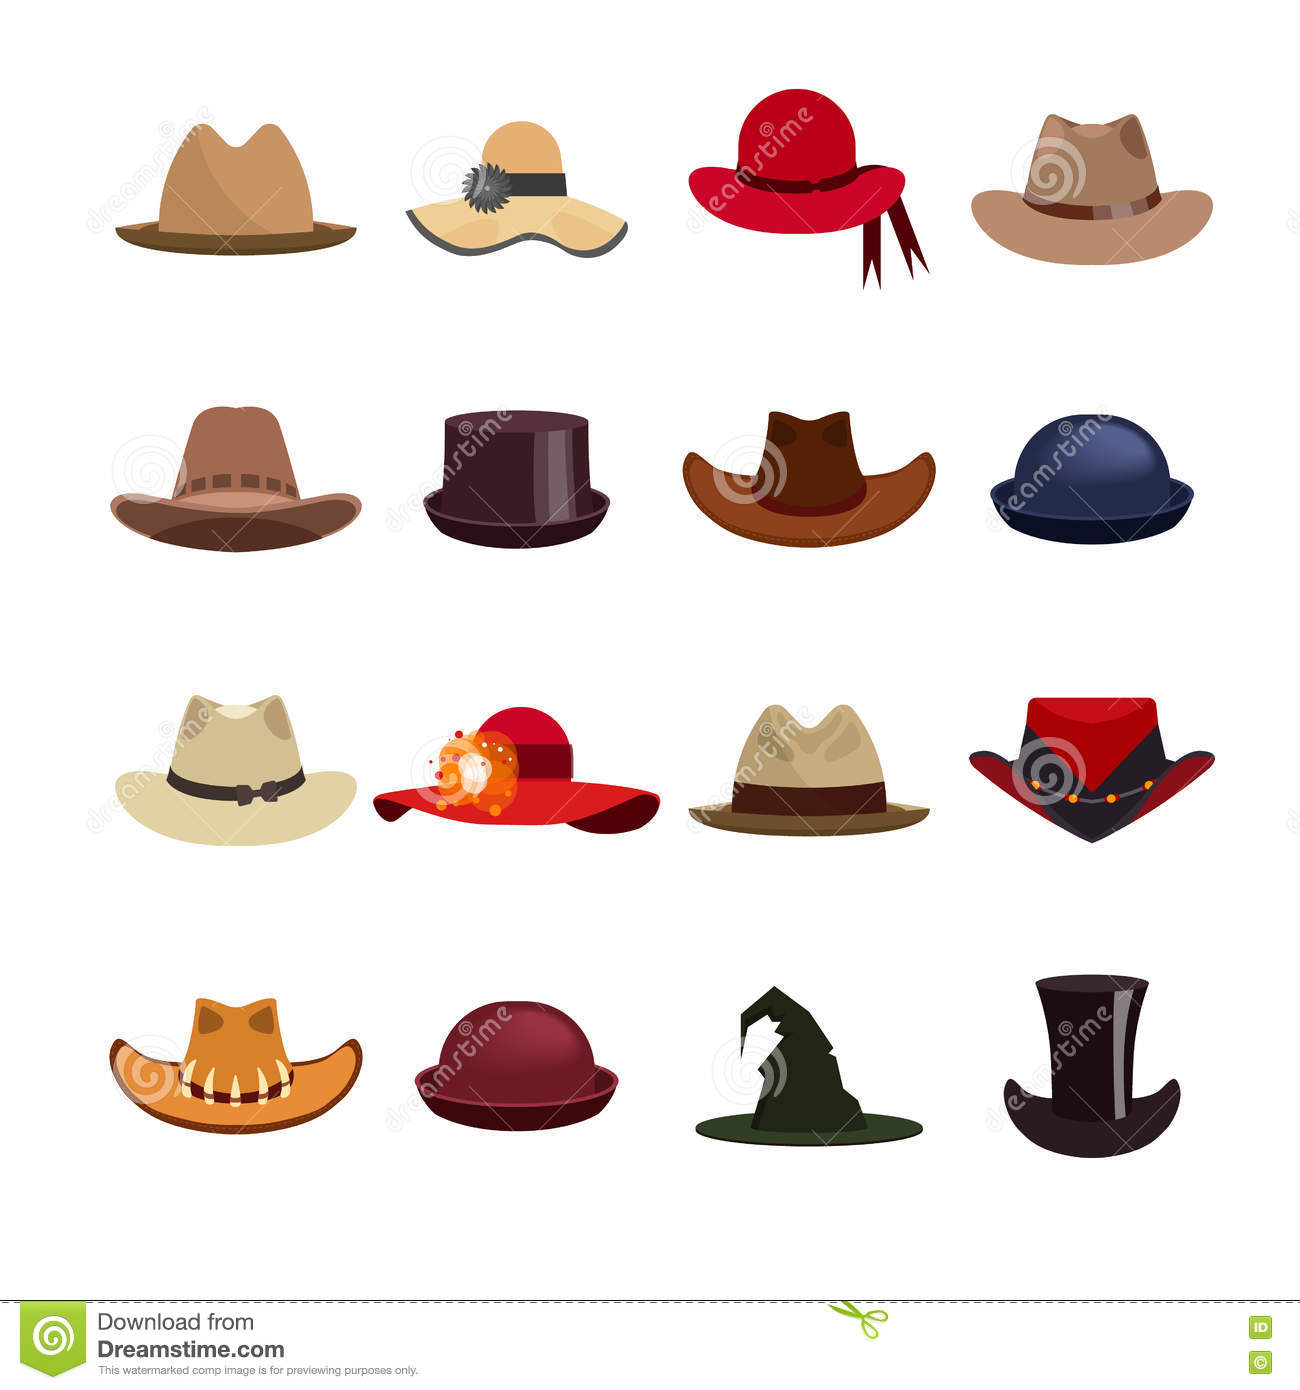 Different Styles Of Hats: Vector Set Of Man And Woman Hats. Stock Vector